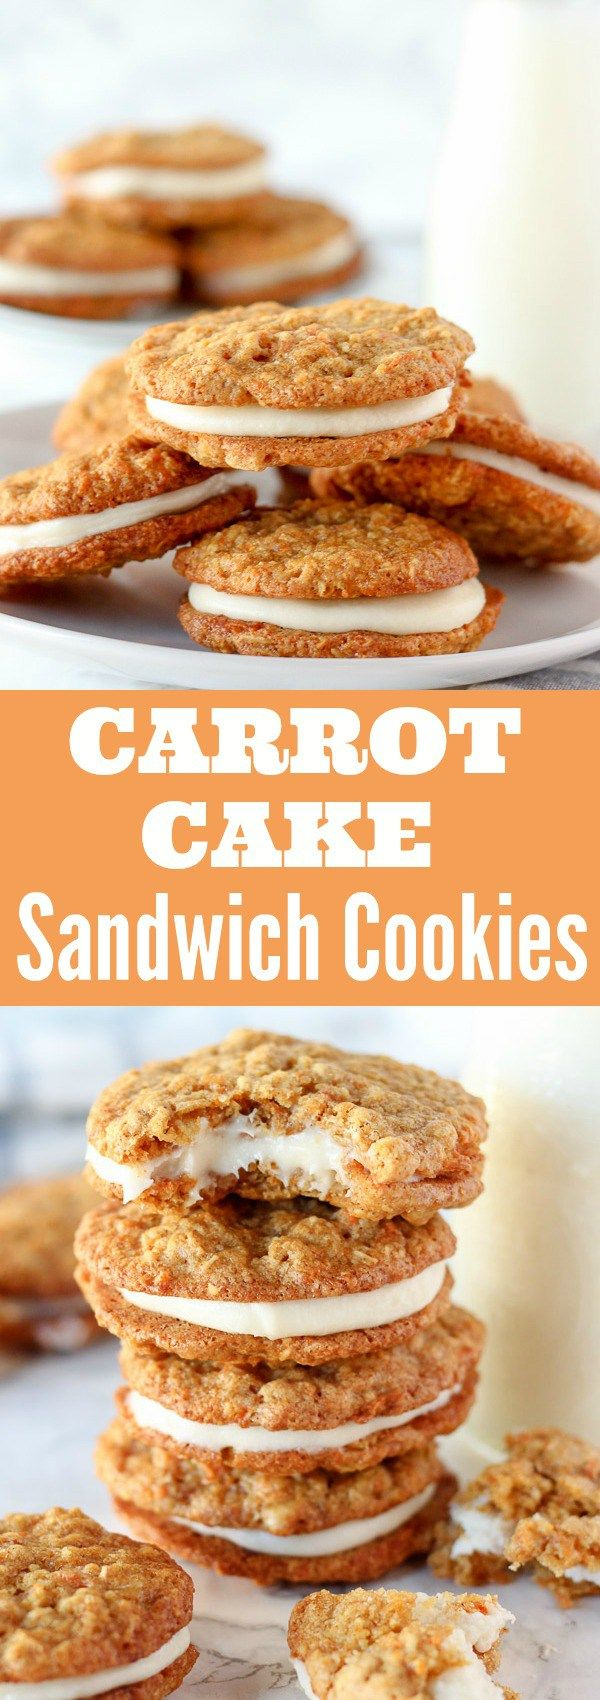 ... carrots, coconut and walnuts, filled with cream cheese frosting